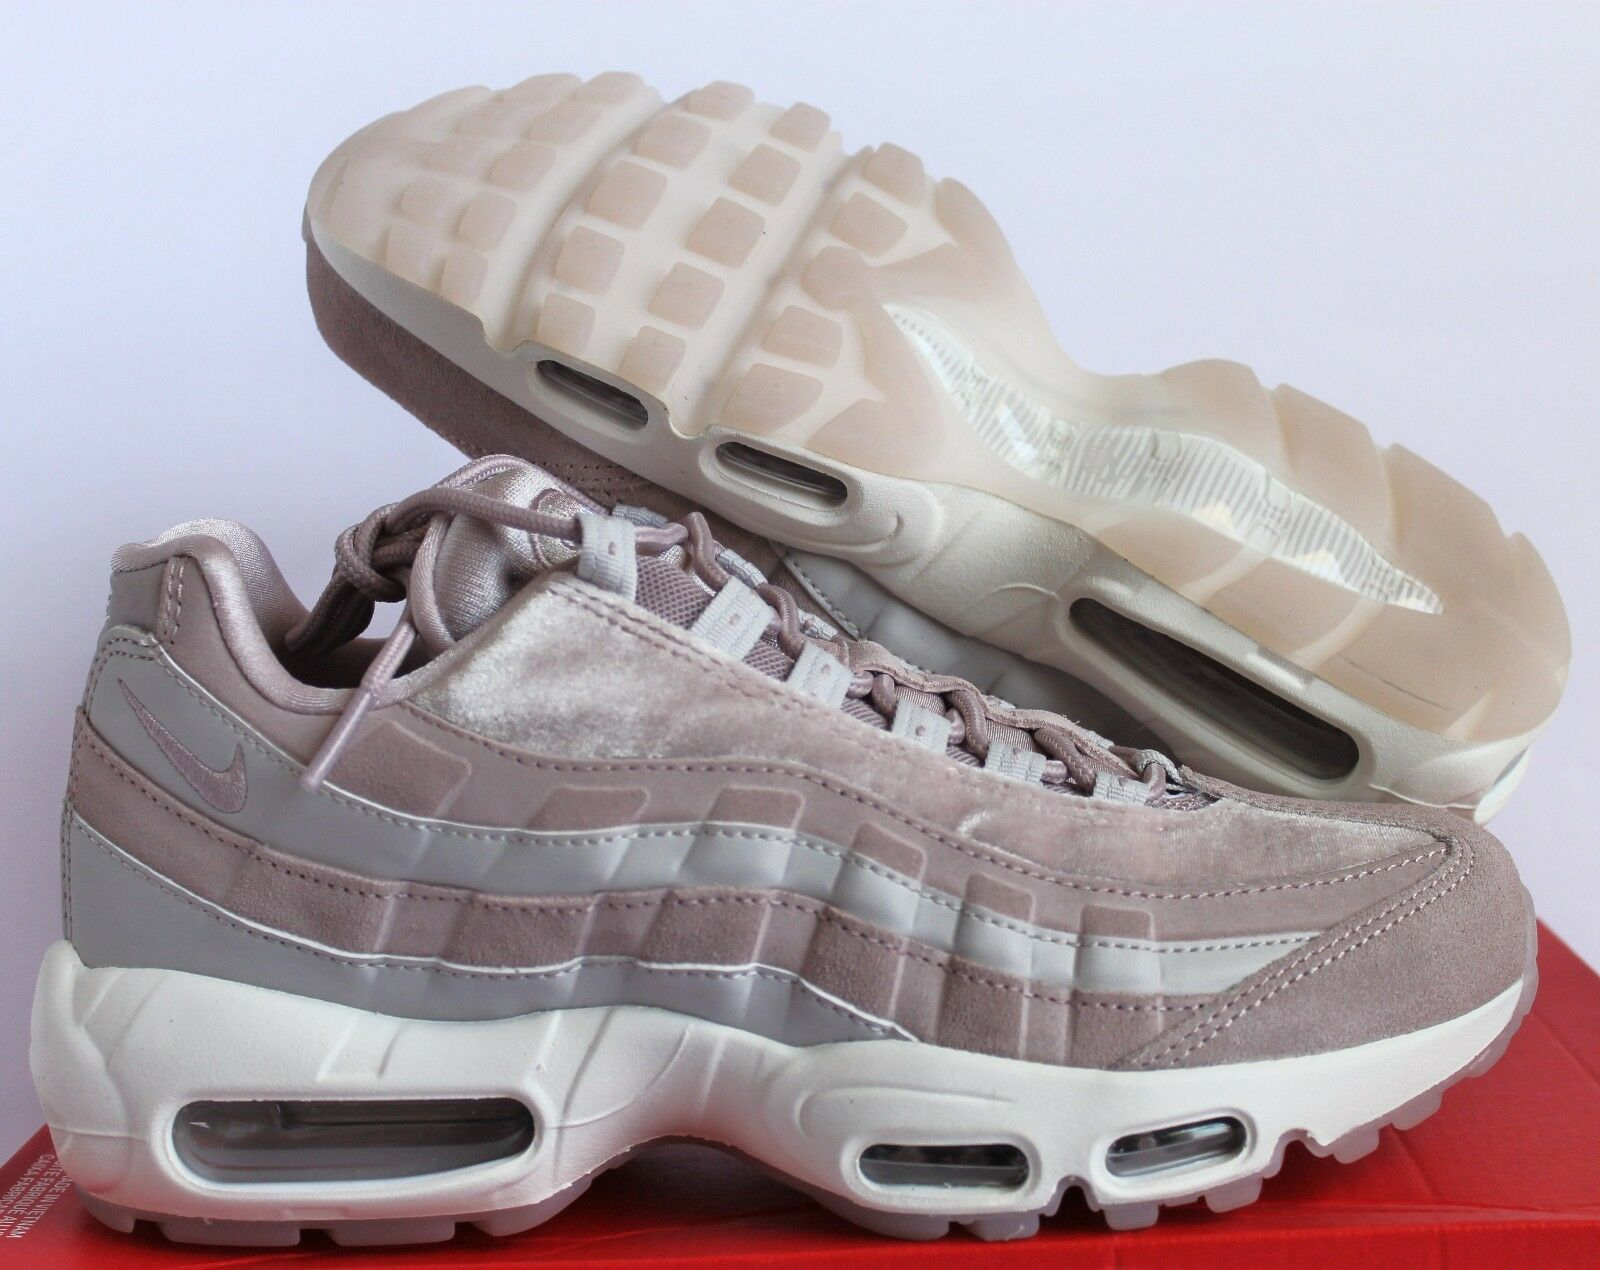 Nike Women Air Max 95 LX Particle Rose-White sz 9.5 [AA1103-600]